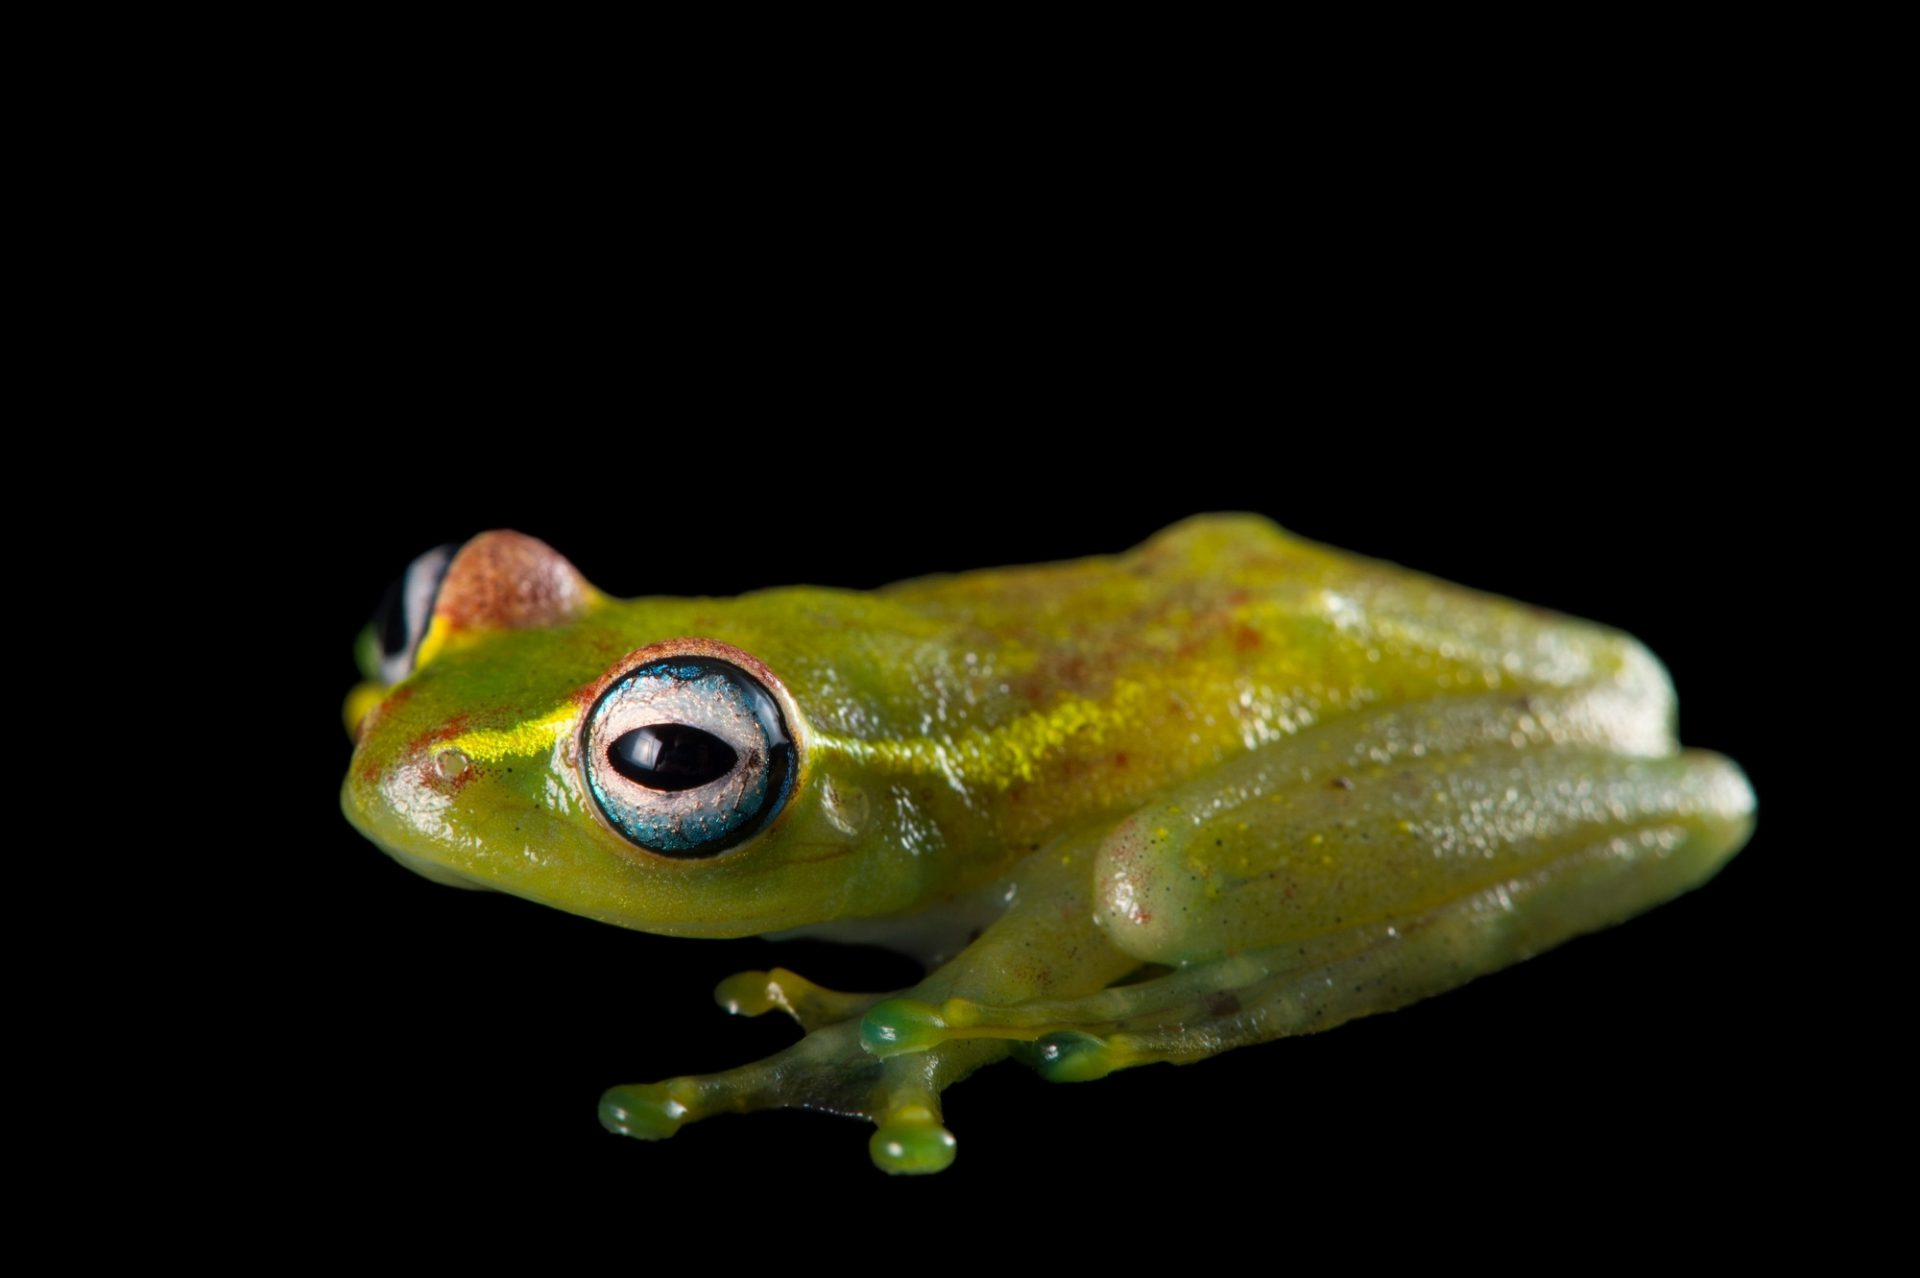 Photo: A central bright-eyed frog (Boophis rappiodes) from the Plzen Zoo in the Czech Republic.